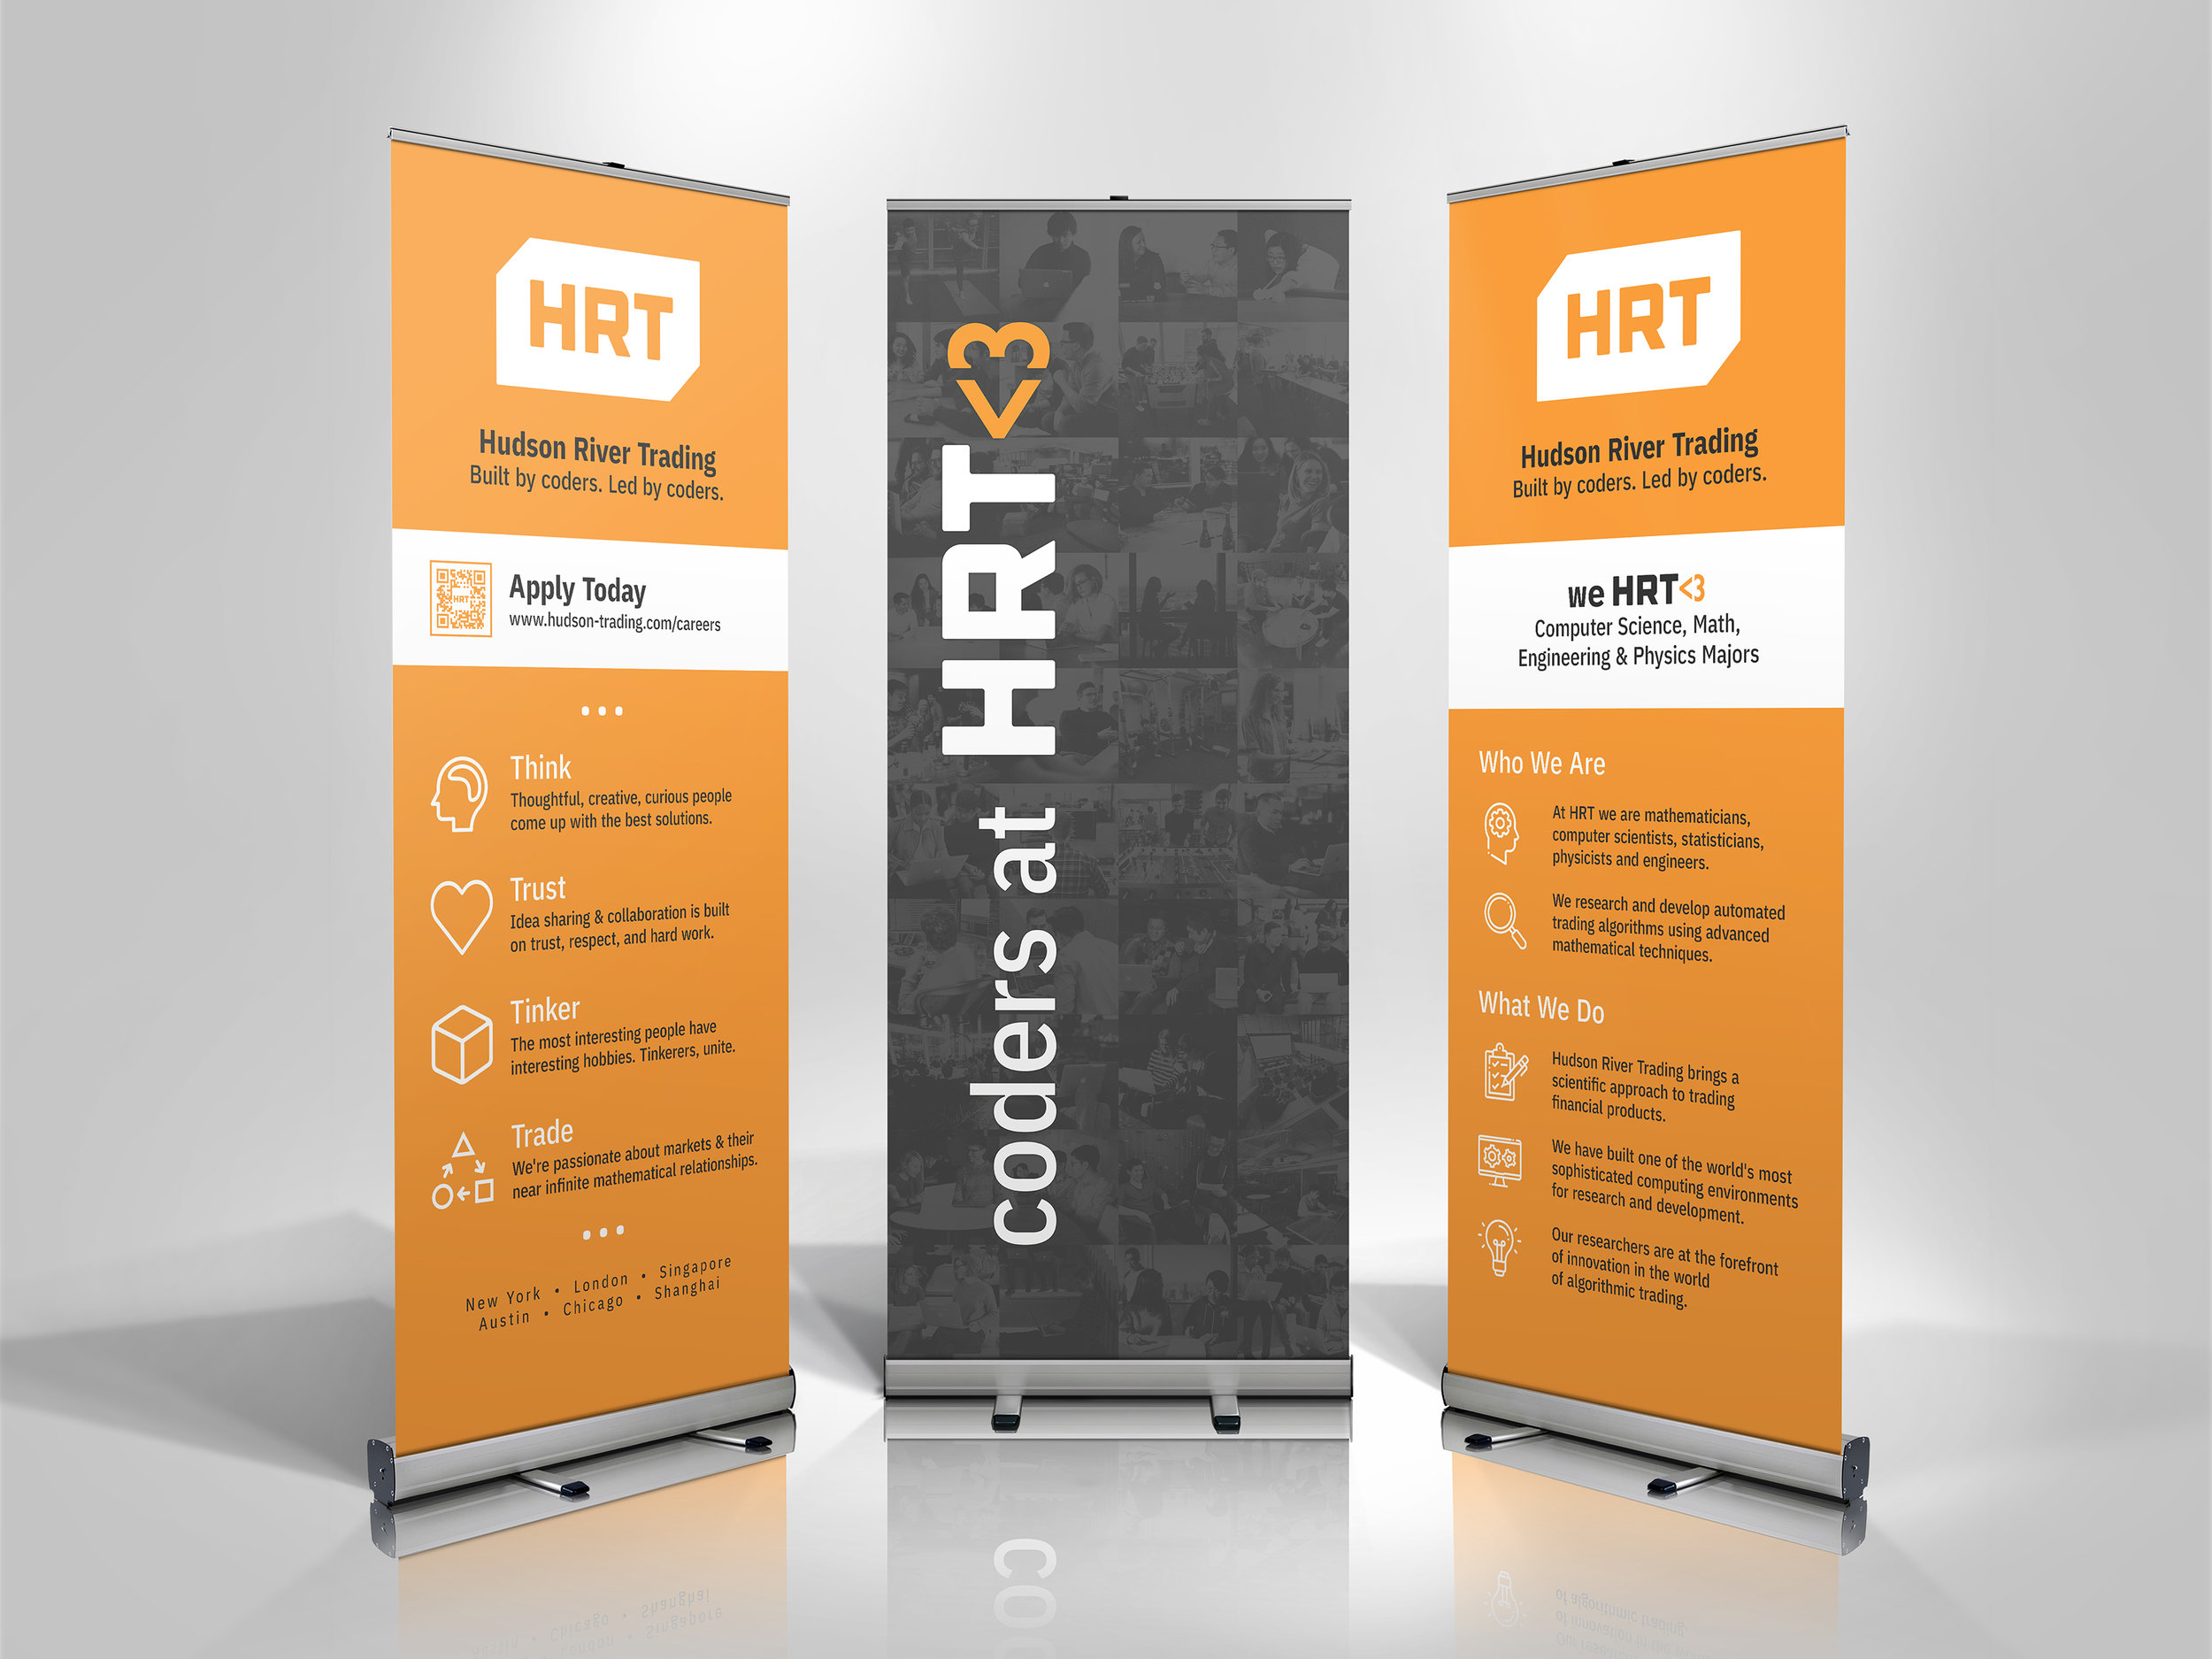 Print & Digital Marketing - Event & Tour Flyers, Posters, Business Cards, Billboards, Media Kits, Ads & More.